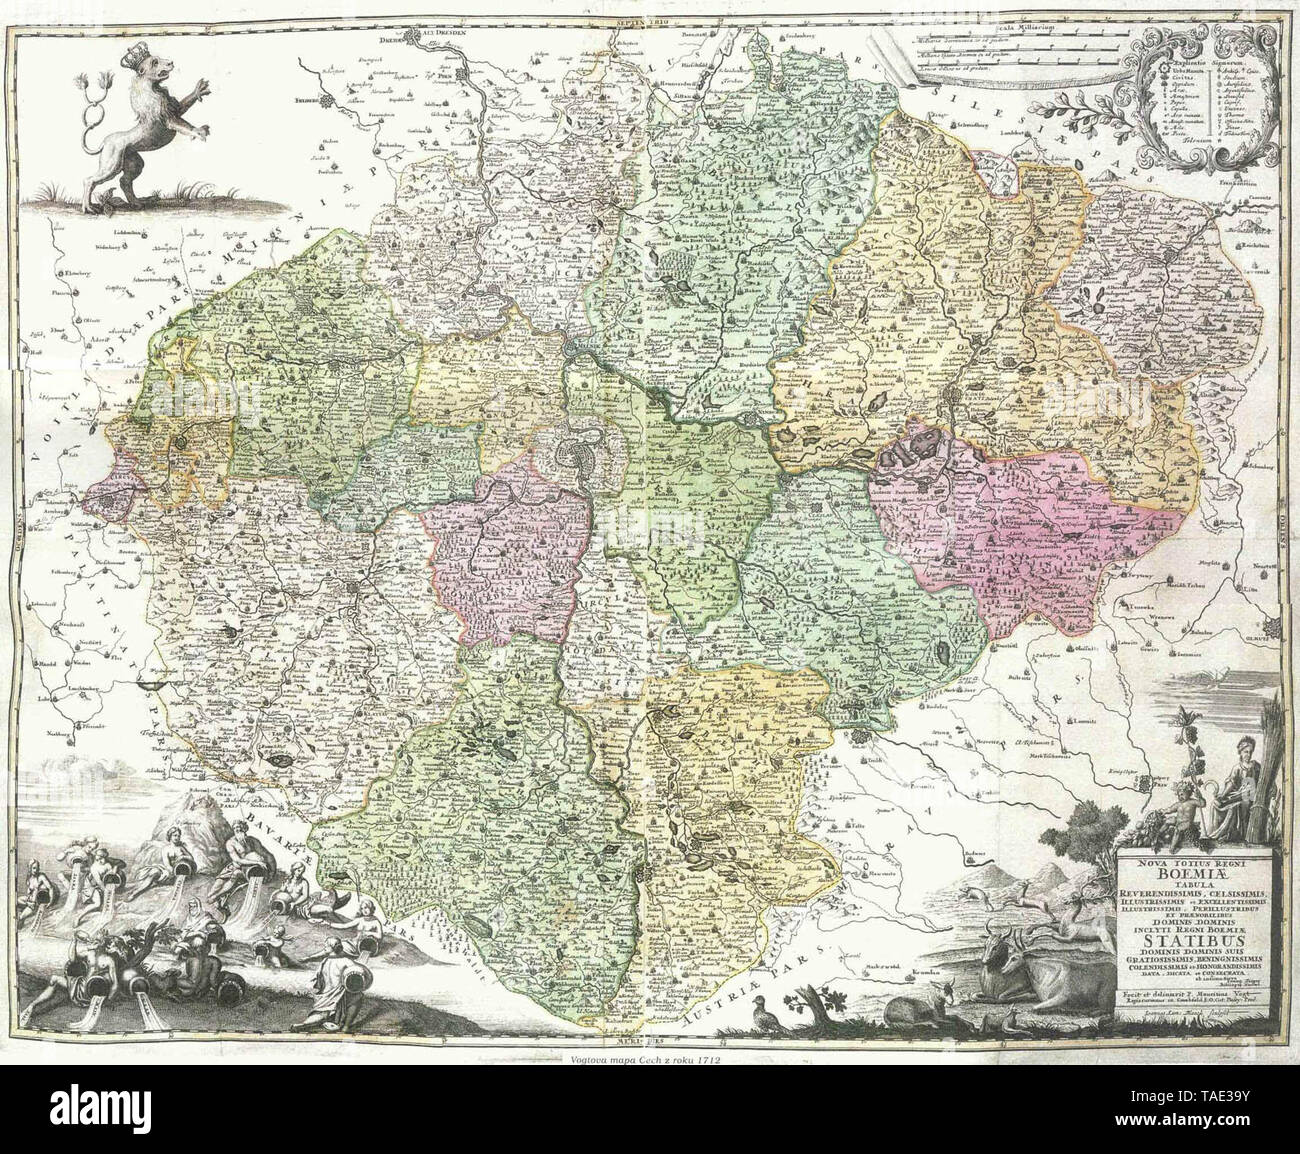 Administrative division of Bohemia in 1712 - Stock Image